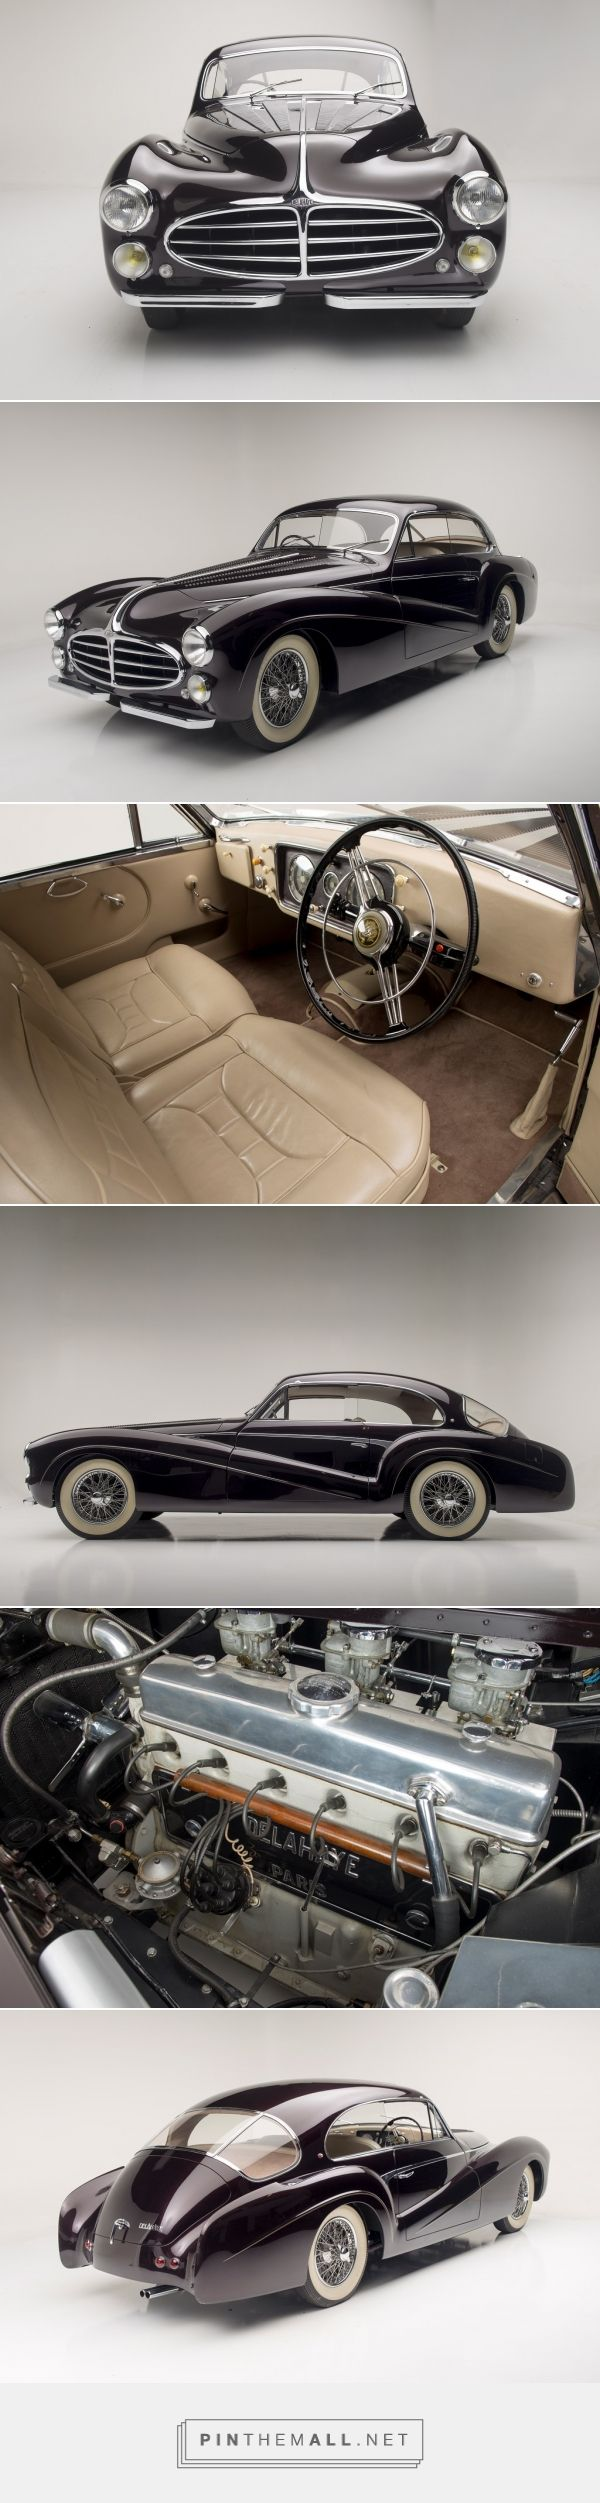 1953 Delahaye 235 - Type 235 coupe that has unique and stunning bodywork by Saoutchik, engine is a straight 6-cylinder topped by three carburetors, providing more than 150 horsepower and a top speed of more than 100 miles per hour. - created via https://pinthemall.net